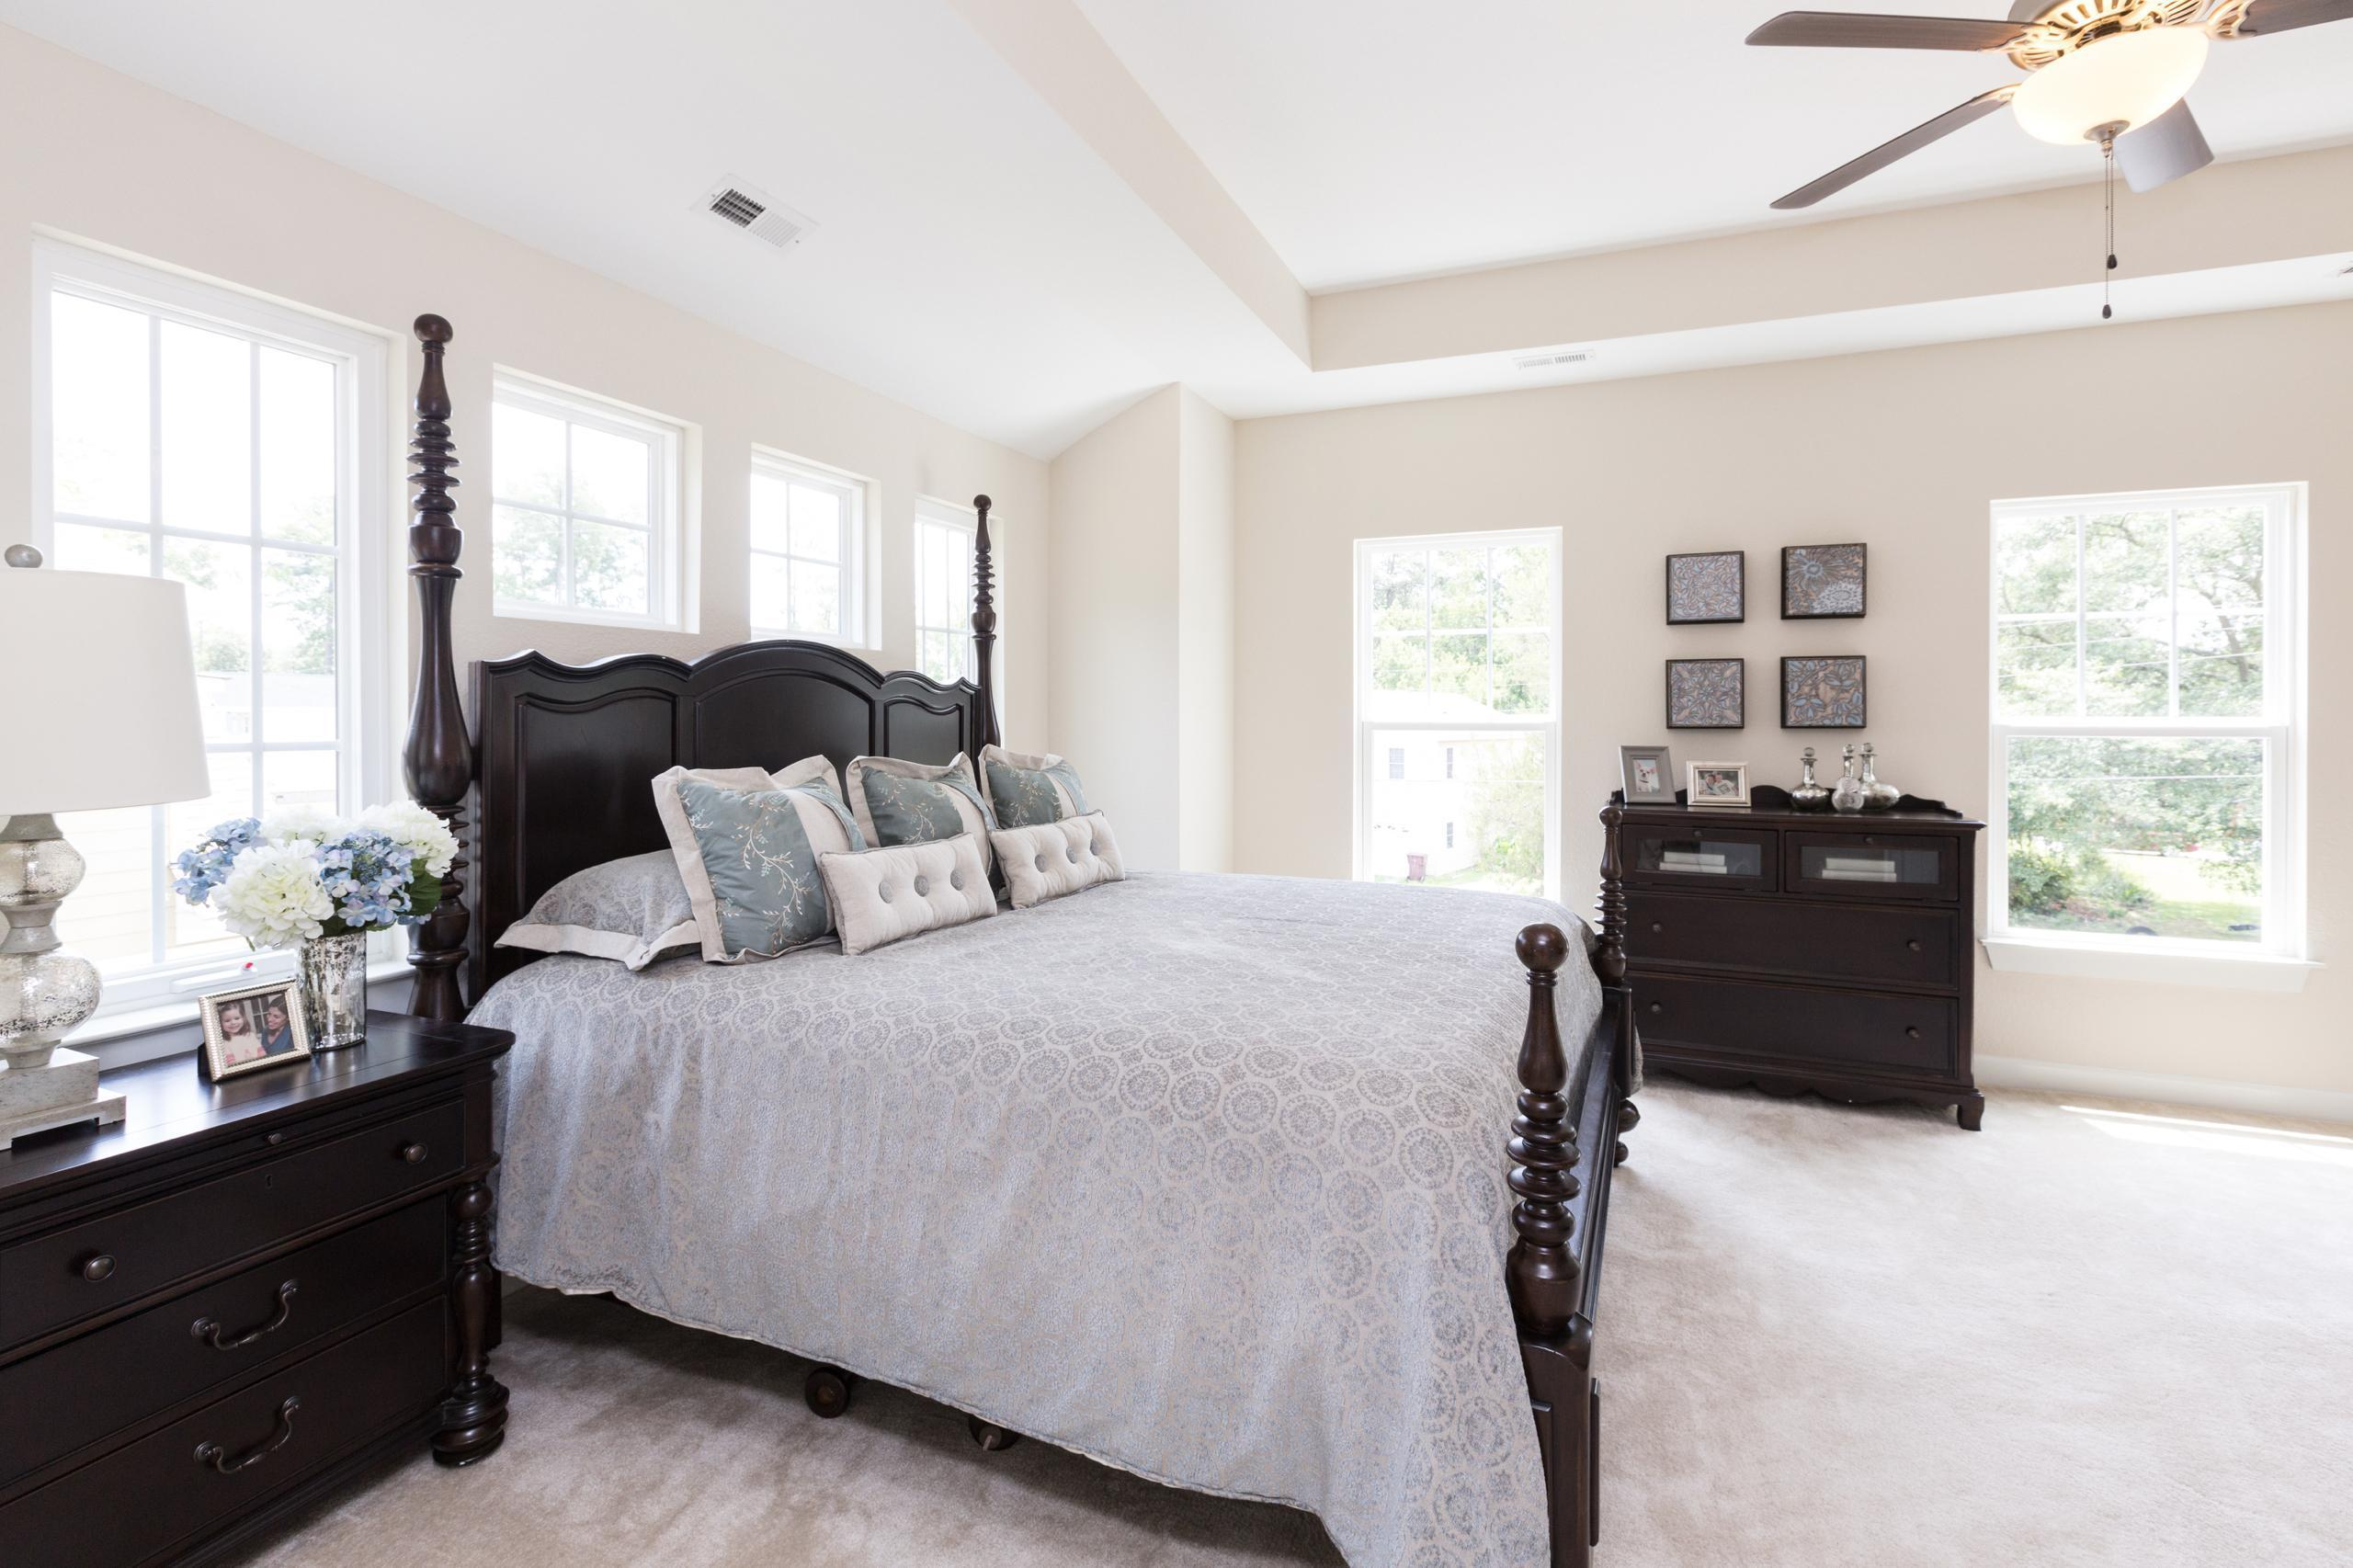 Bedroom featured in The Plum Meadow Cottage By Stephen Alexander Homes in Outer Banks, NC